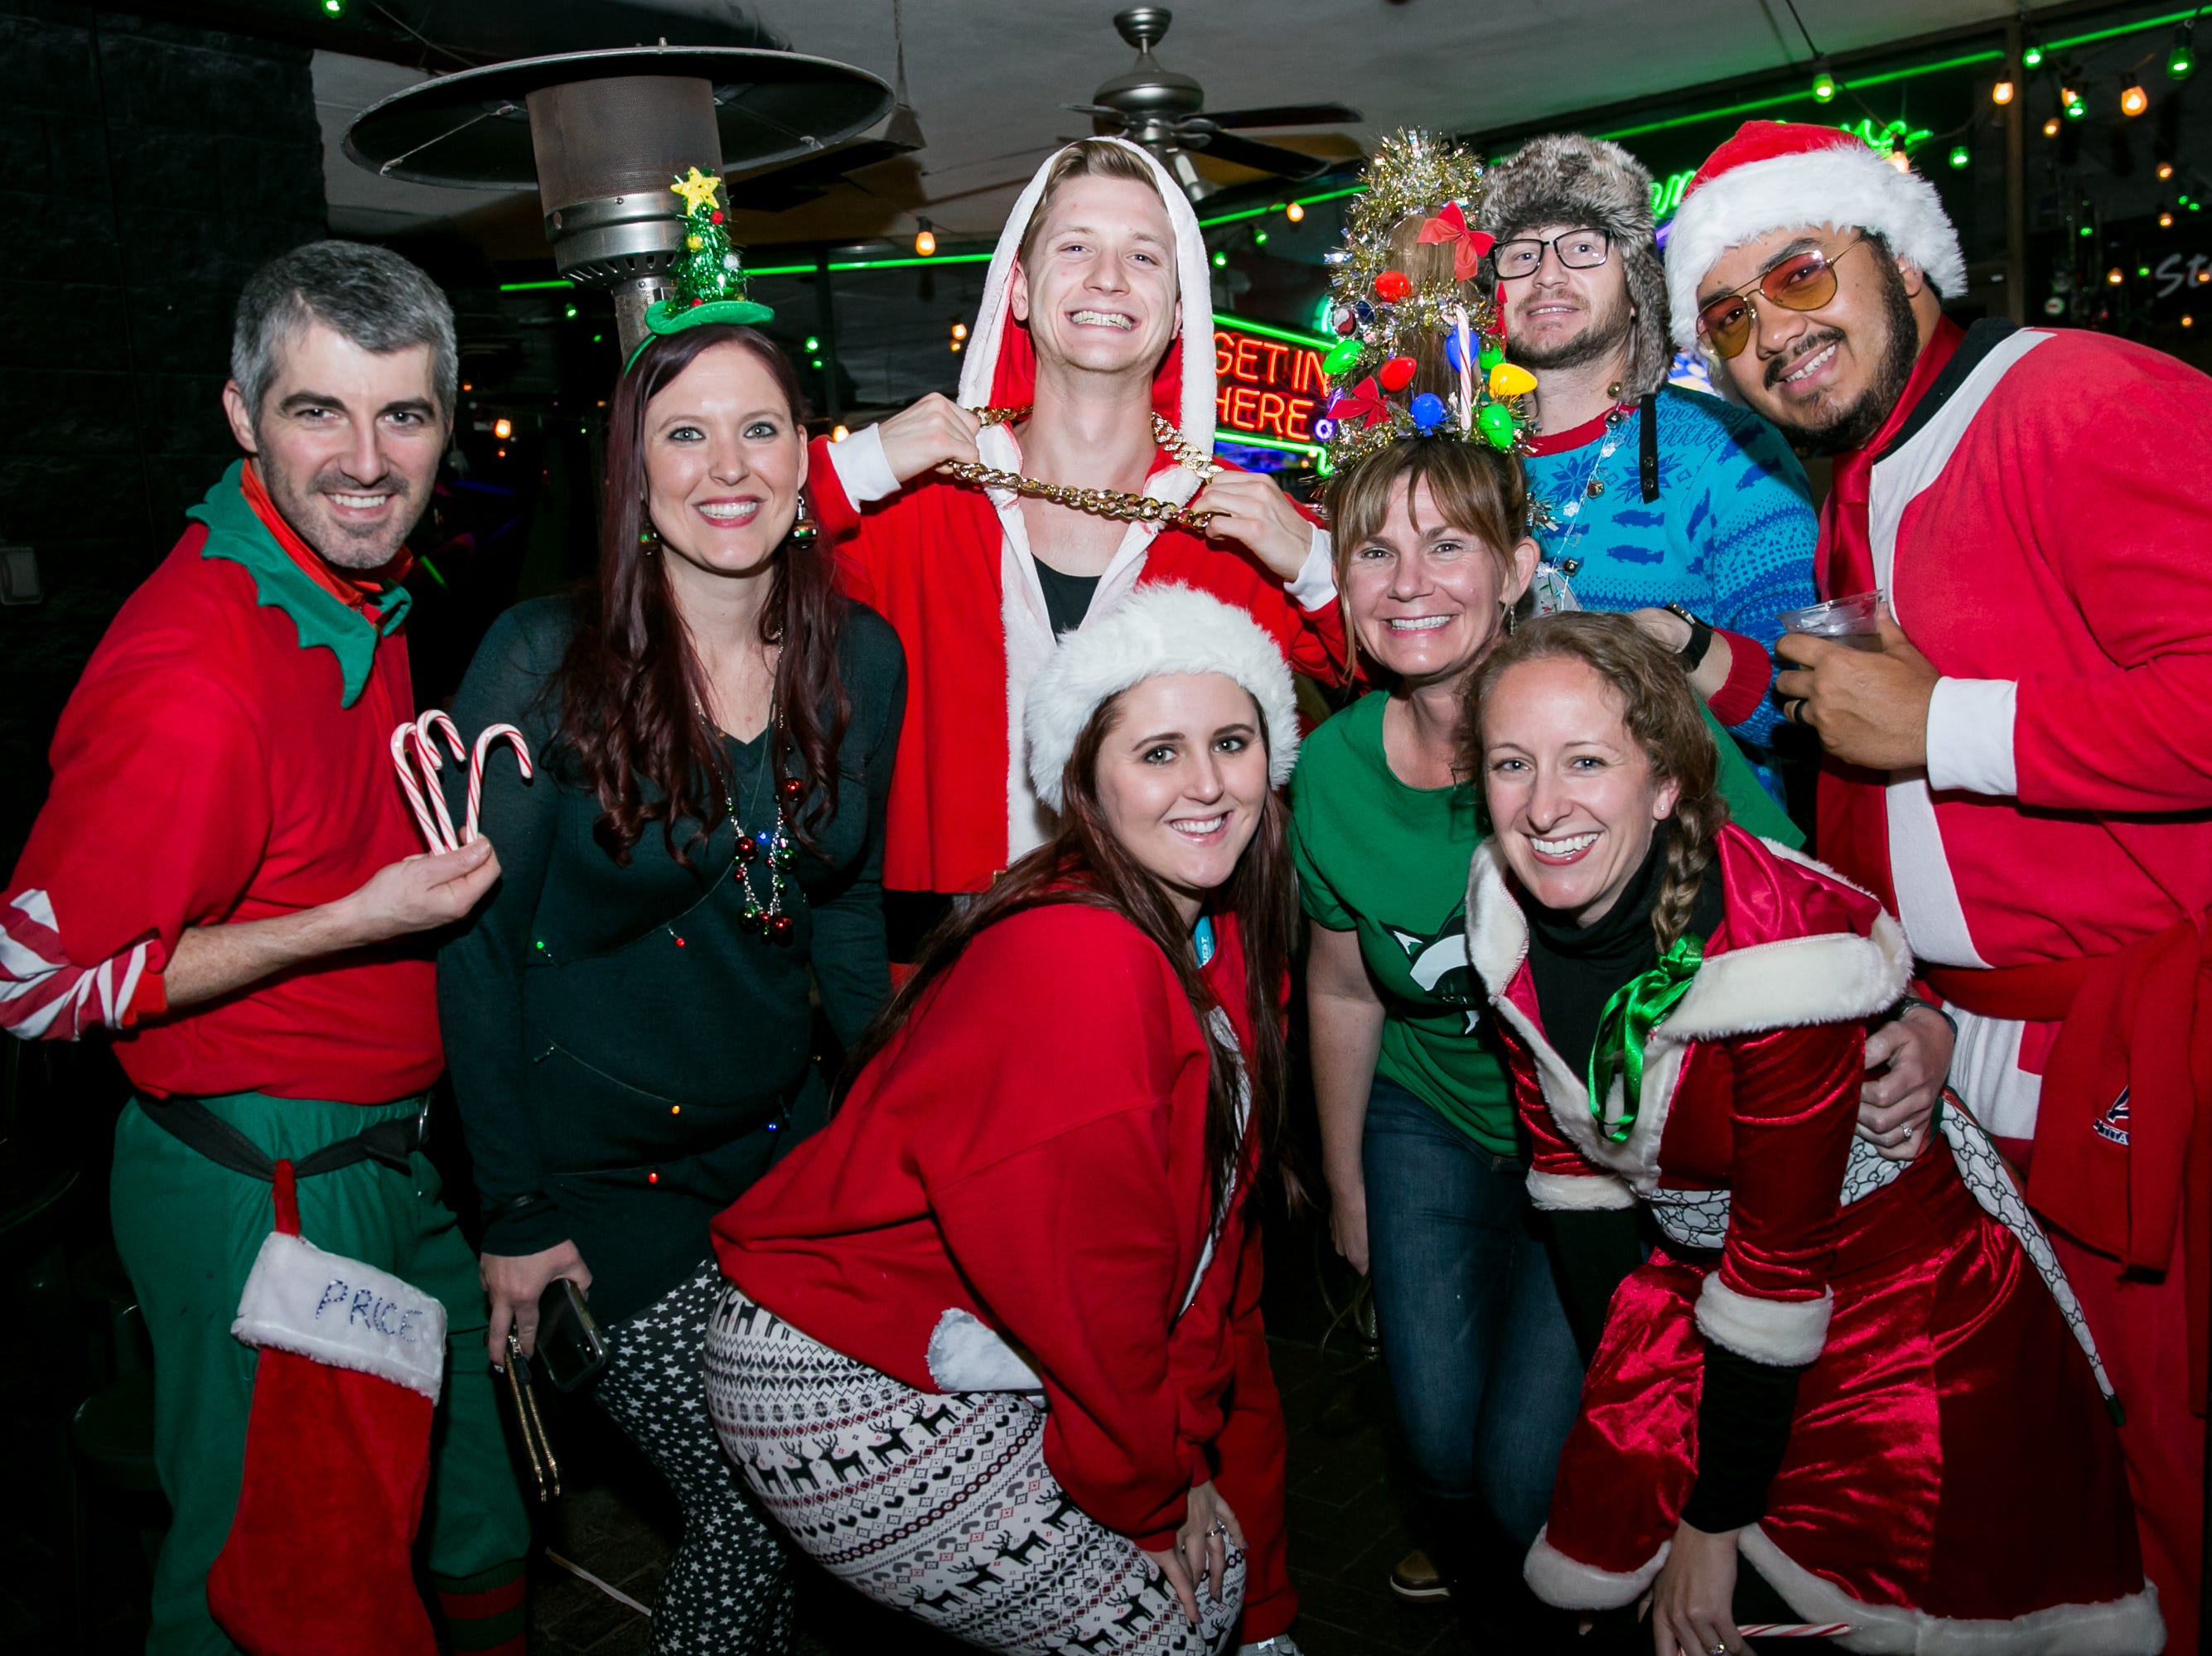 These pals went all out at Steve's Greenhouse Grill during Santarchy on Saturday, December 8, 2018.